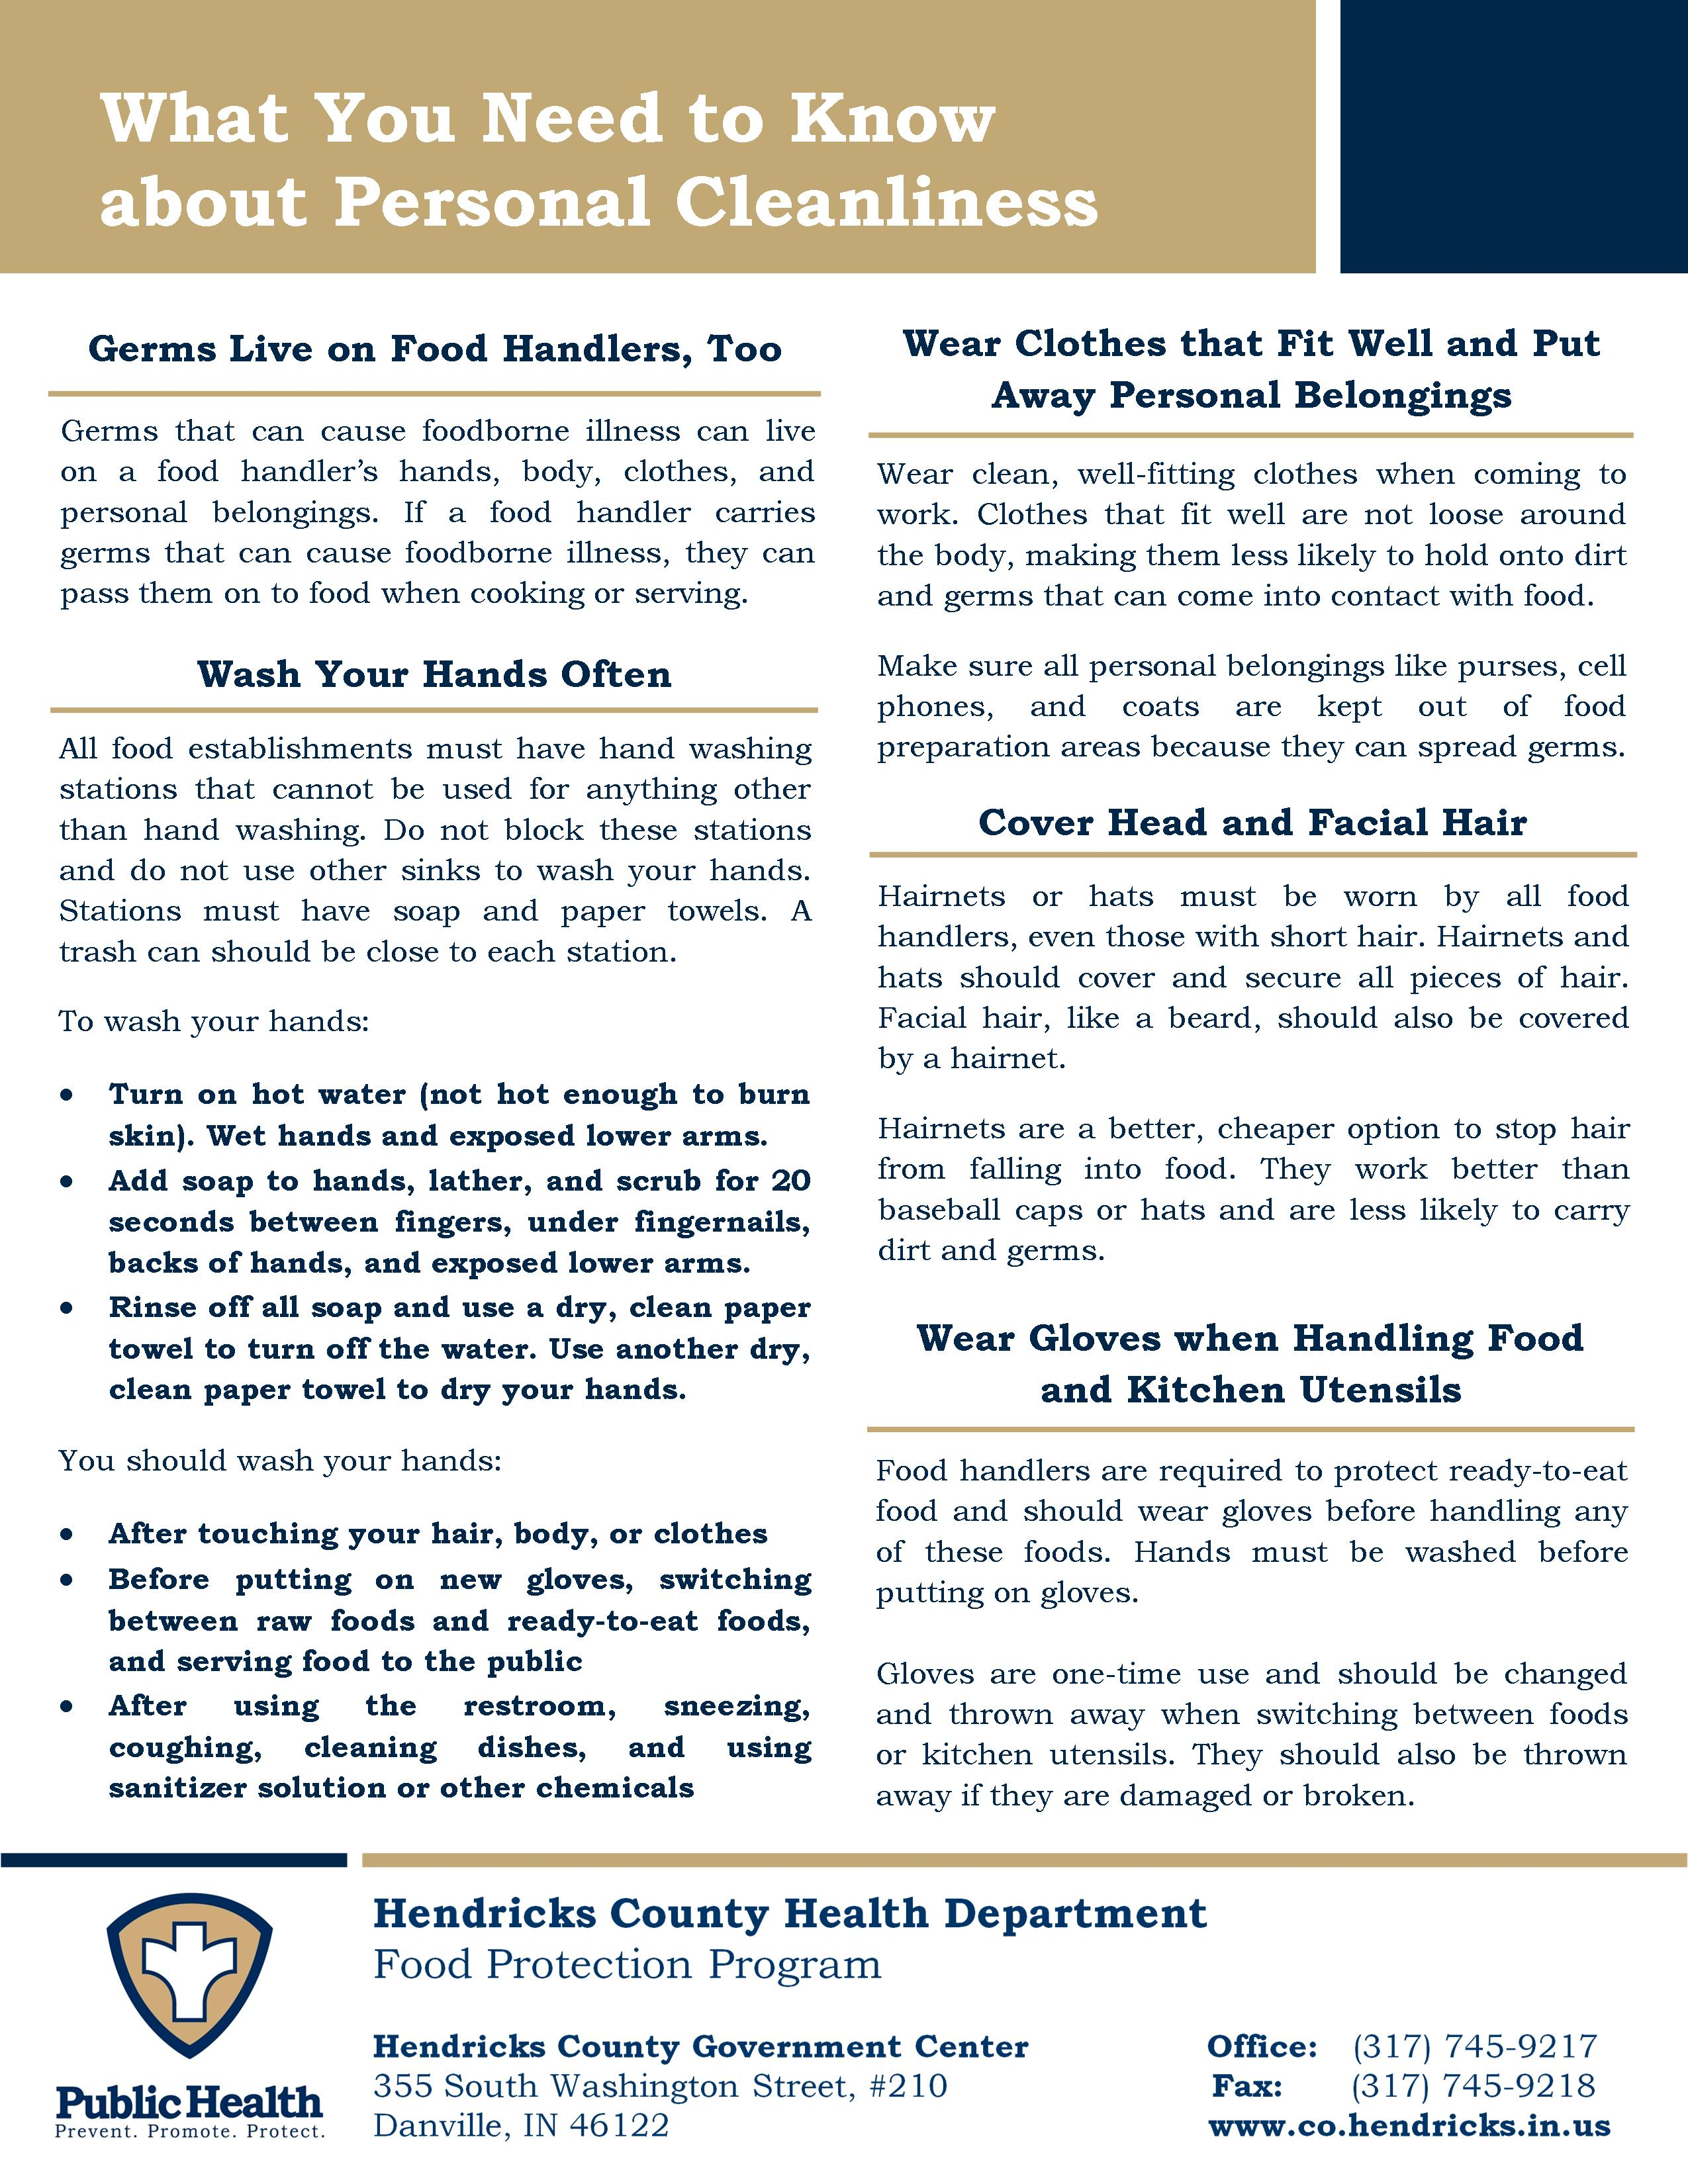 Personal Cleanliness Information Sheet